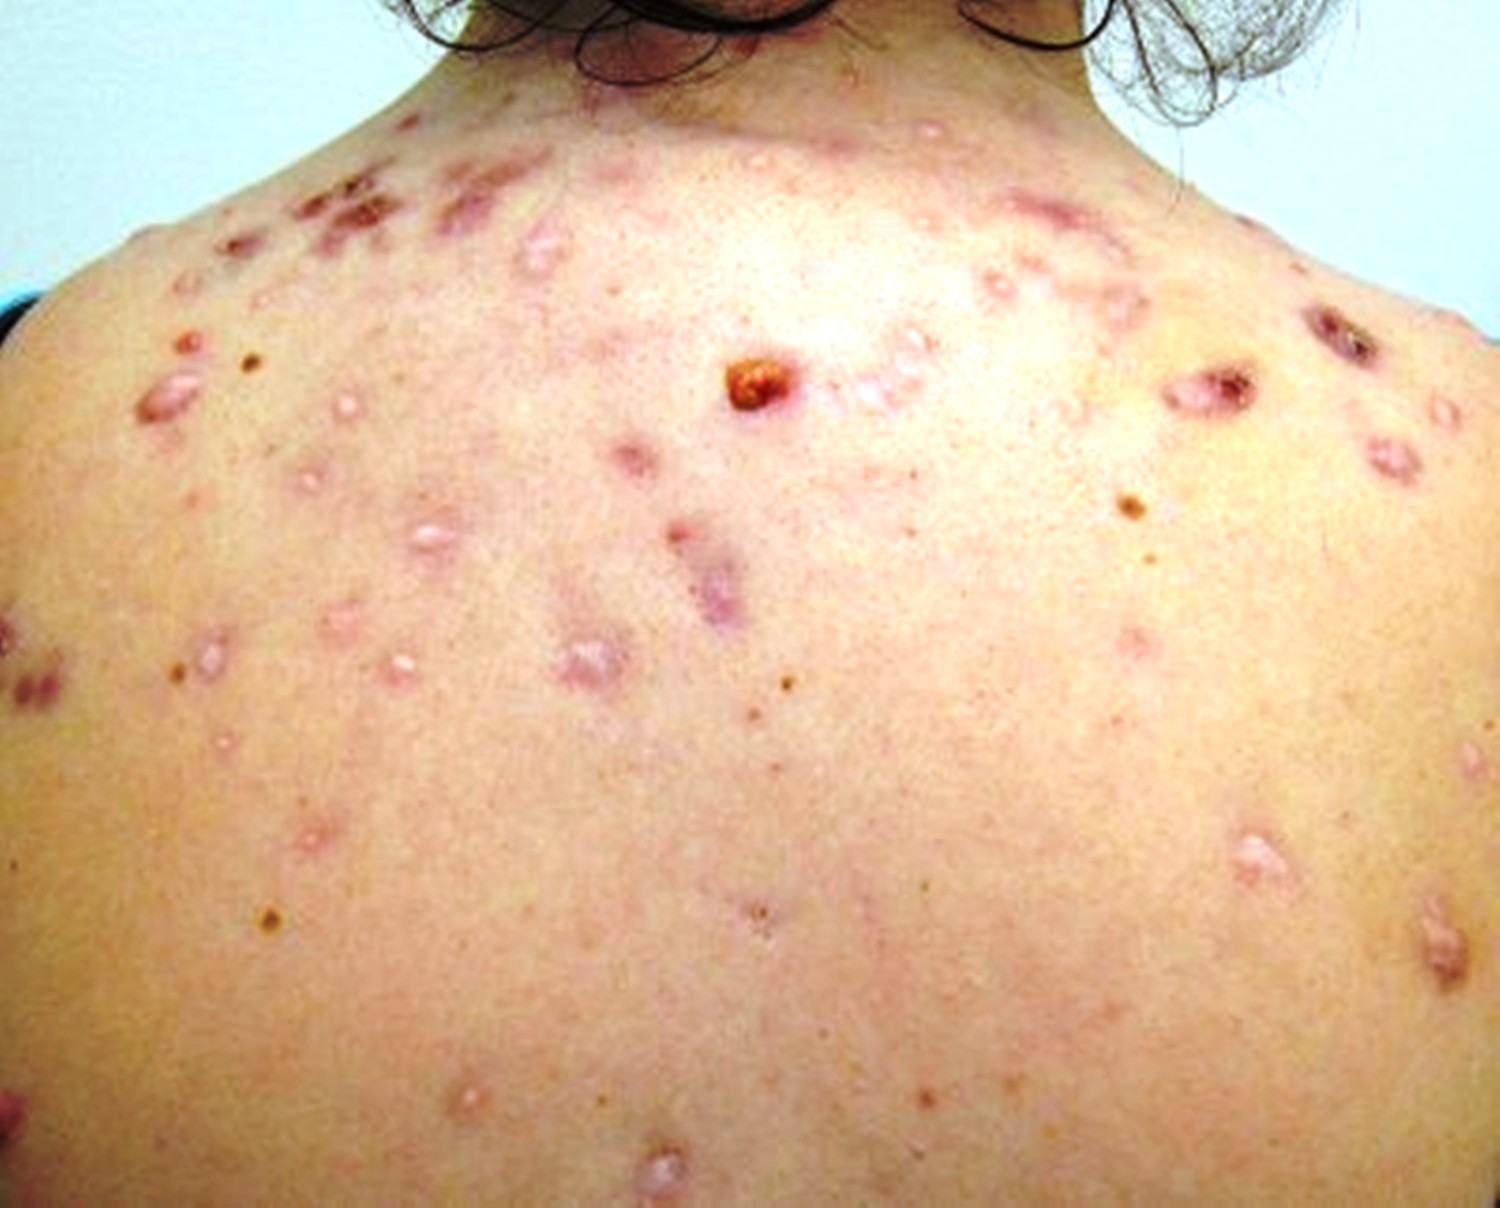 Image of acne on a patient's back